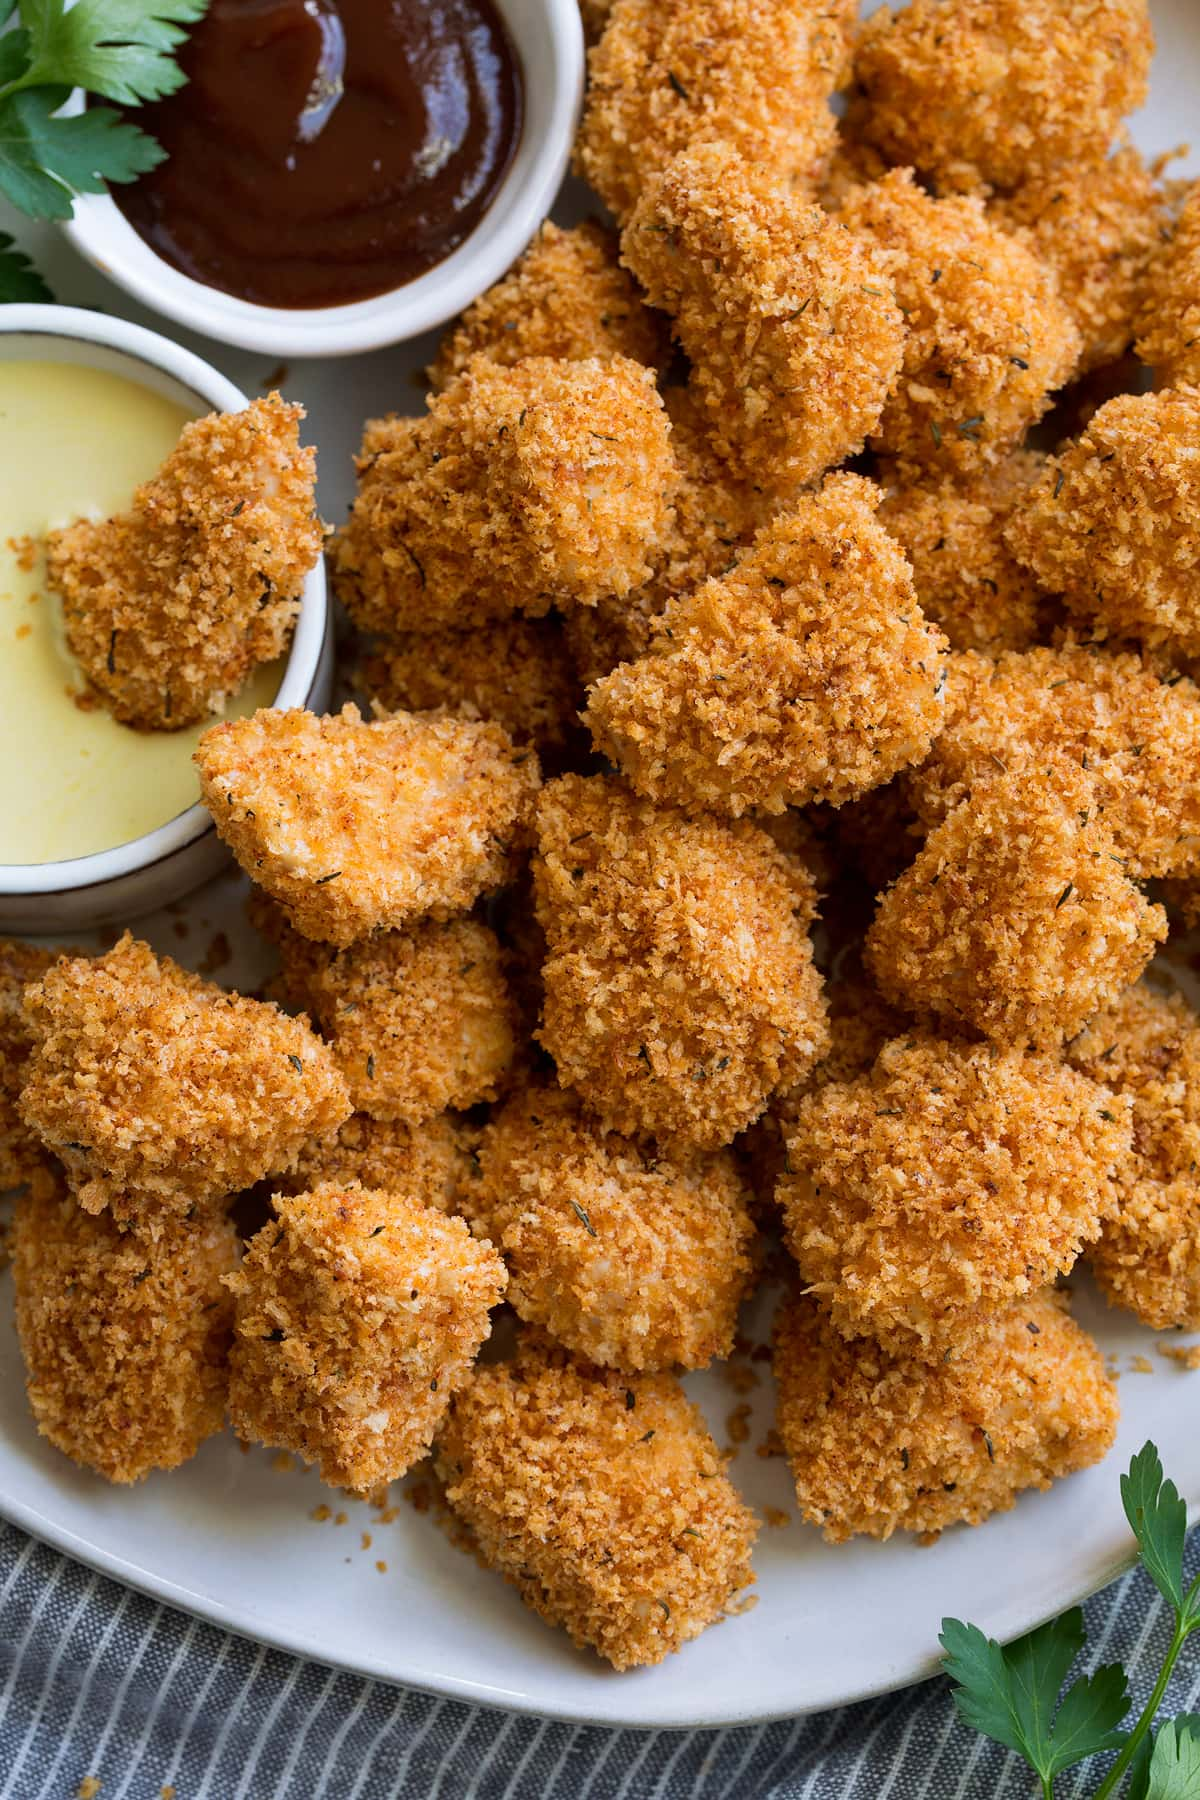 Close up image of Chicken Nuggets nuggets showing crispy panko coating.